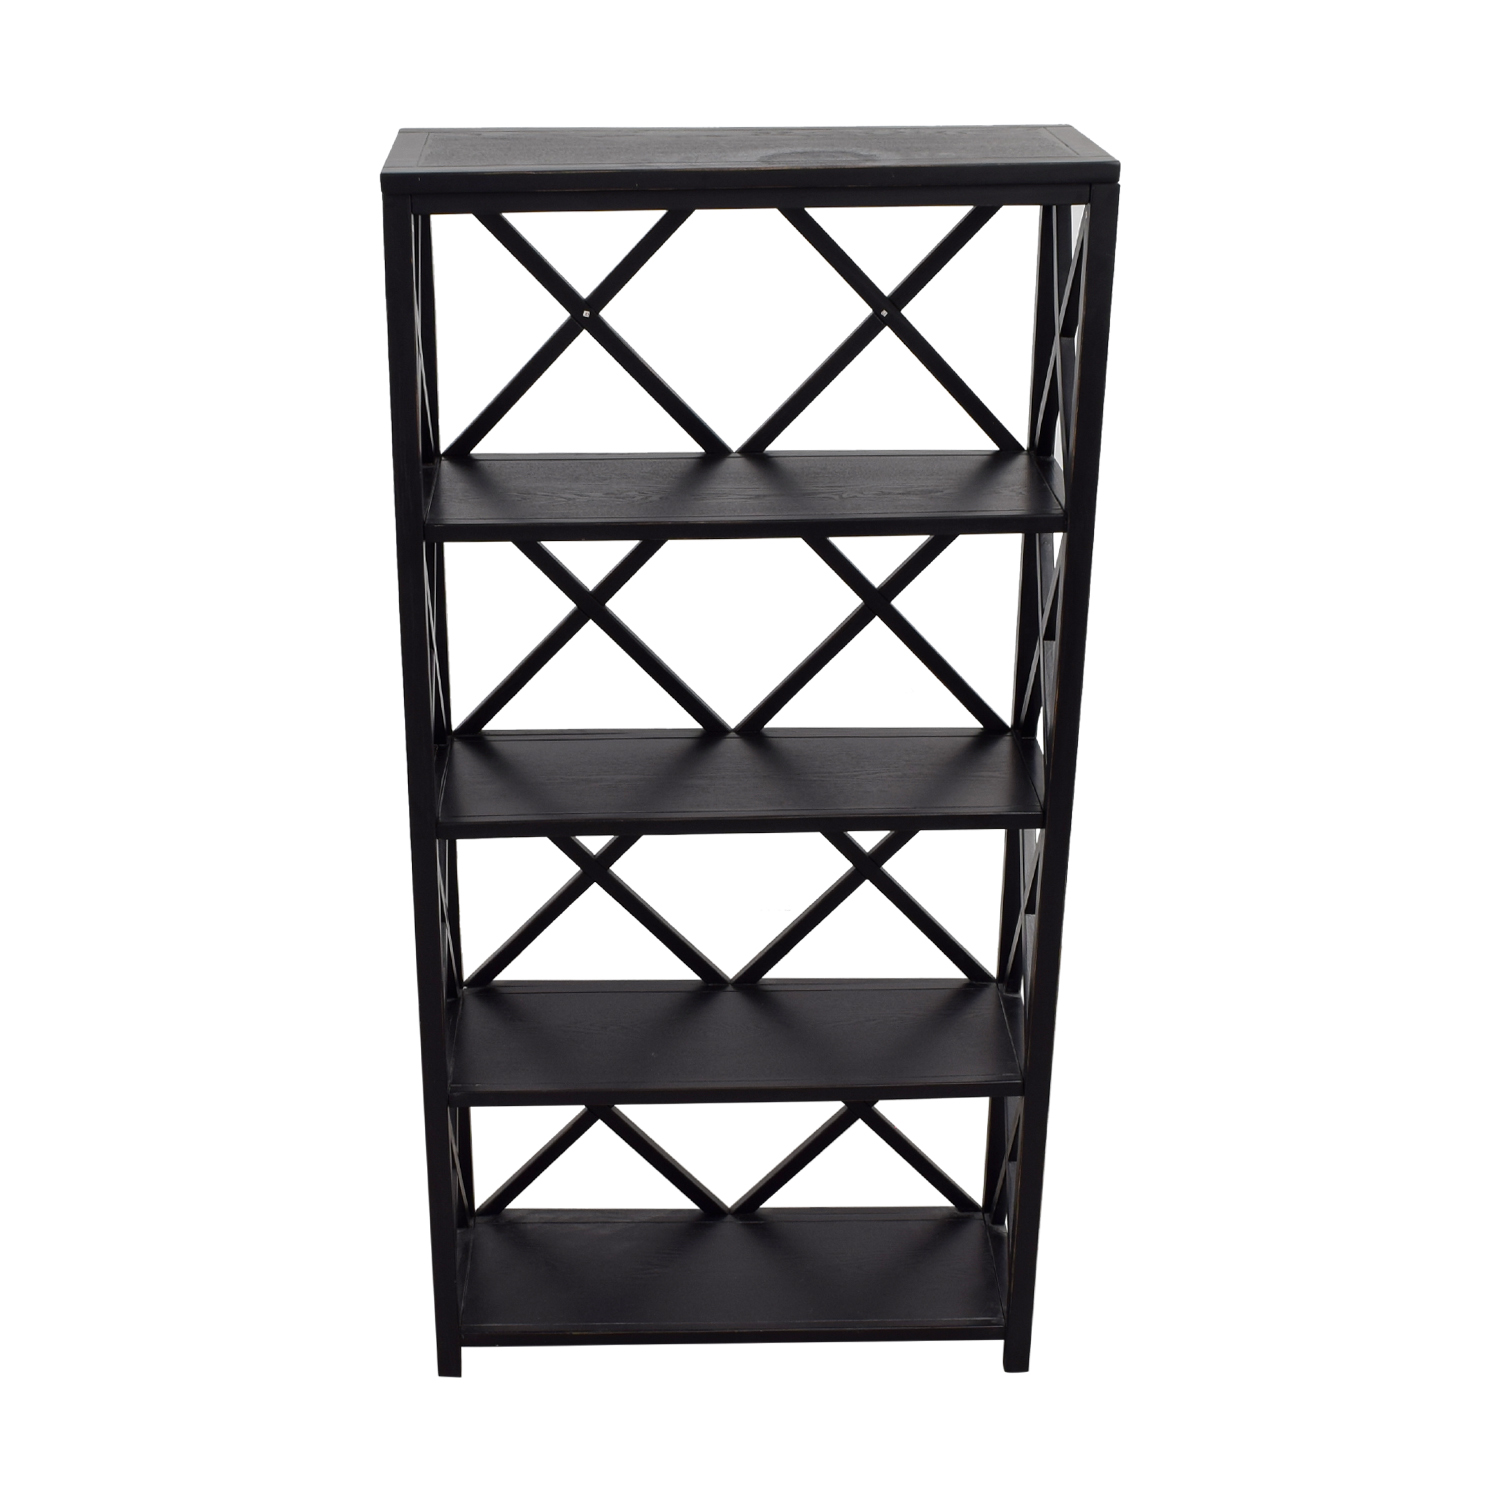 Pier 1 Imports Pier 1 Wooden Bookshelf for sale